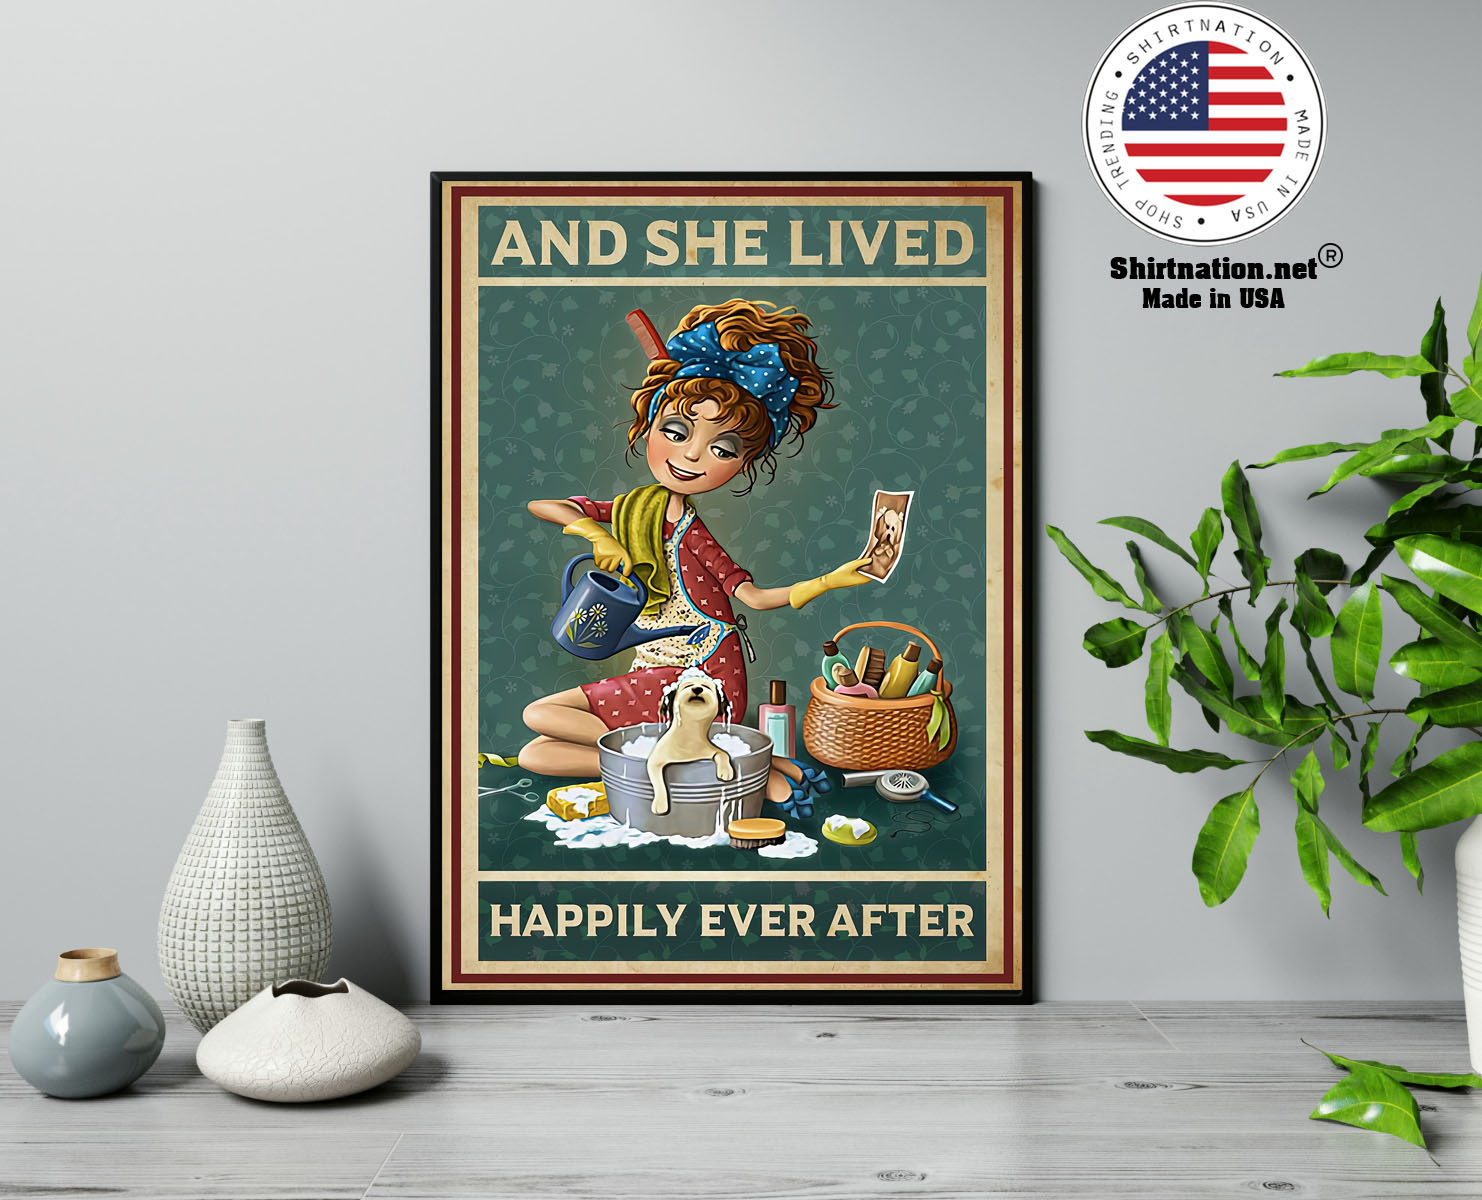 Grooming And she lived happily ever after poster 13